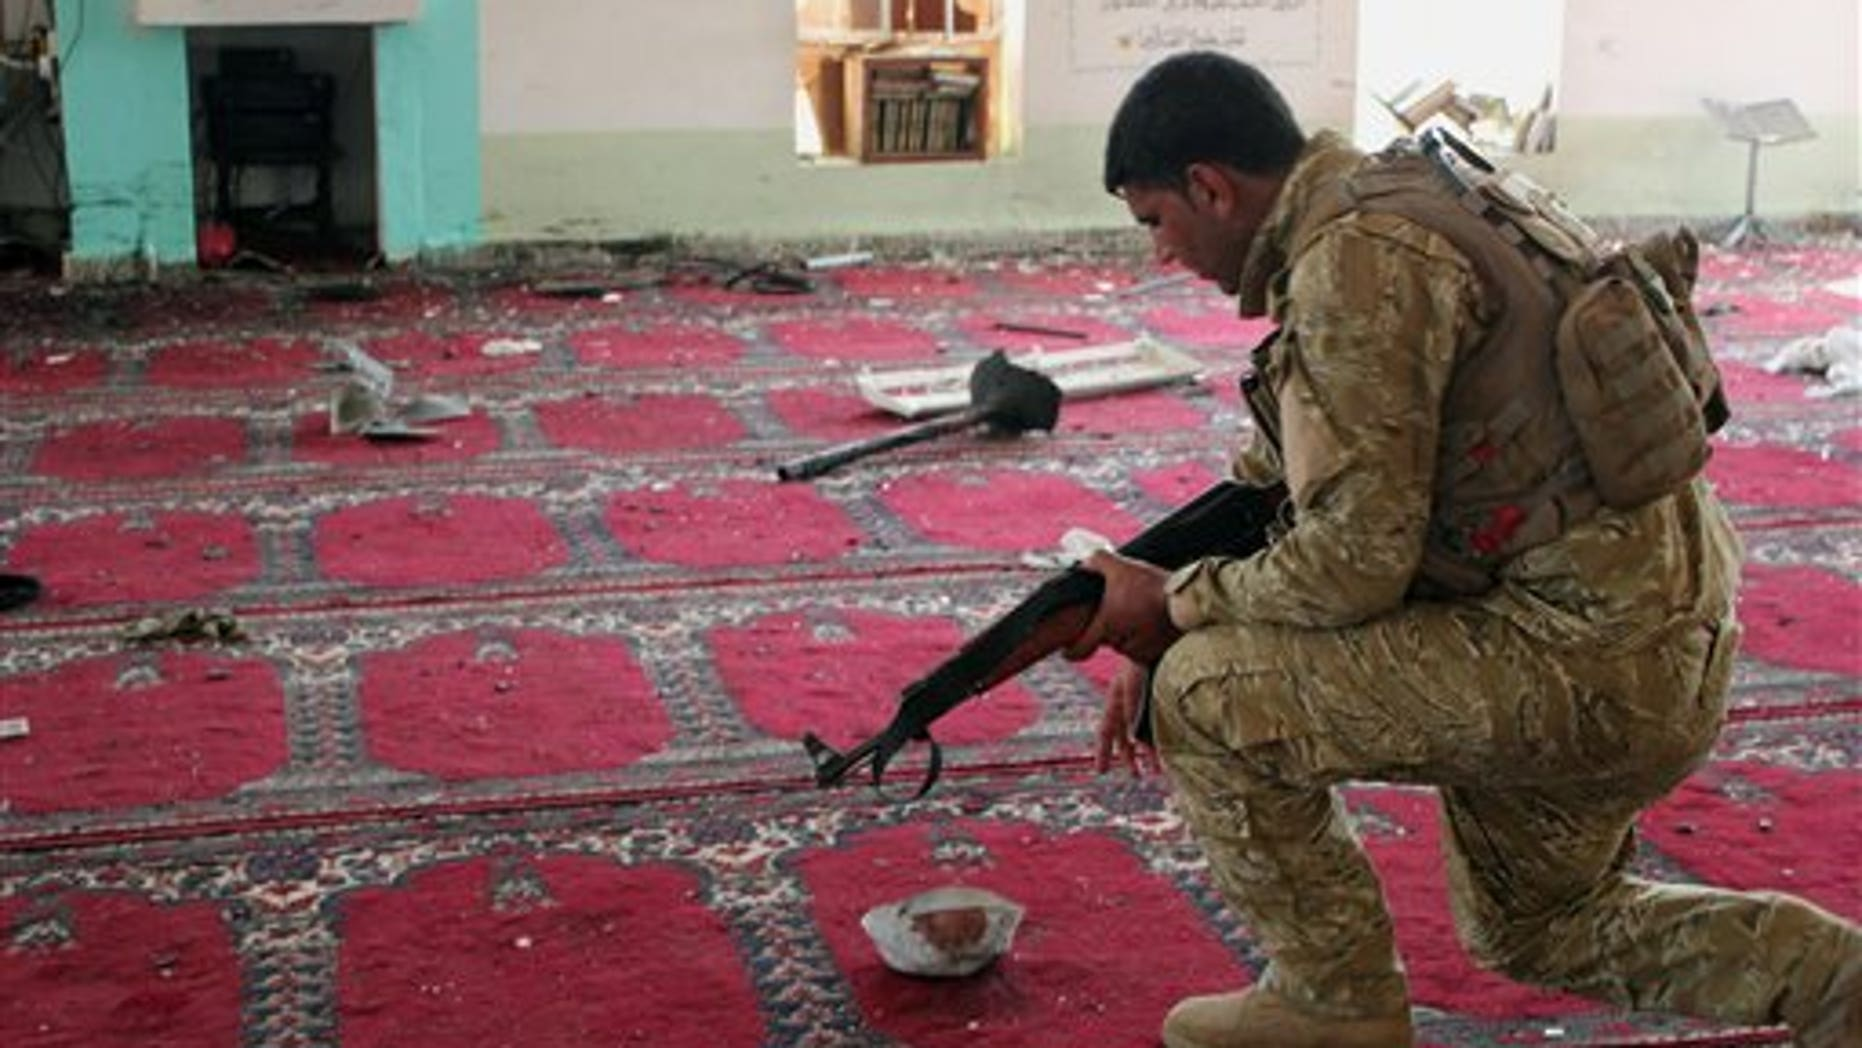 July 19, 2013 - An Iraqi army soldier inspects the damage inside the Abu Bakr Mosque in Baqouba, northeast of Baghdad, Iraq. A bomb hidden in an air conditioner that ripped through a Sunni mosque during midday prayers and other attacks killed dozens in Iraq on Friday, extending a wave of violence targeting worshippers during the holy month of Ramadan.